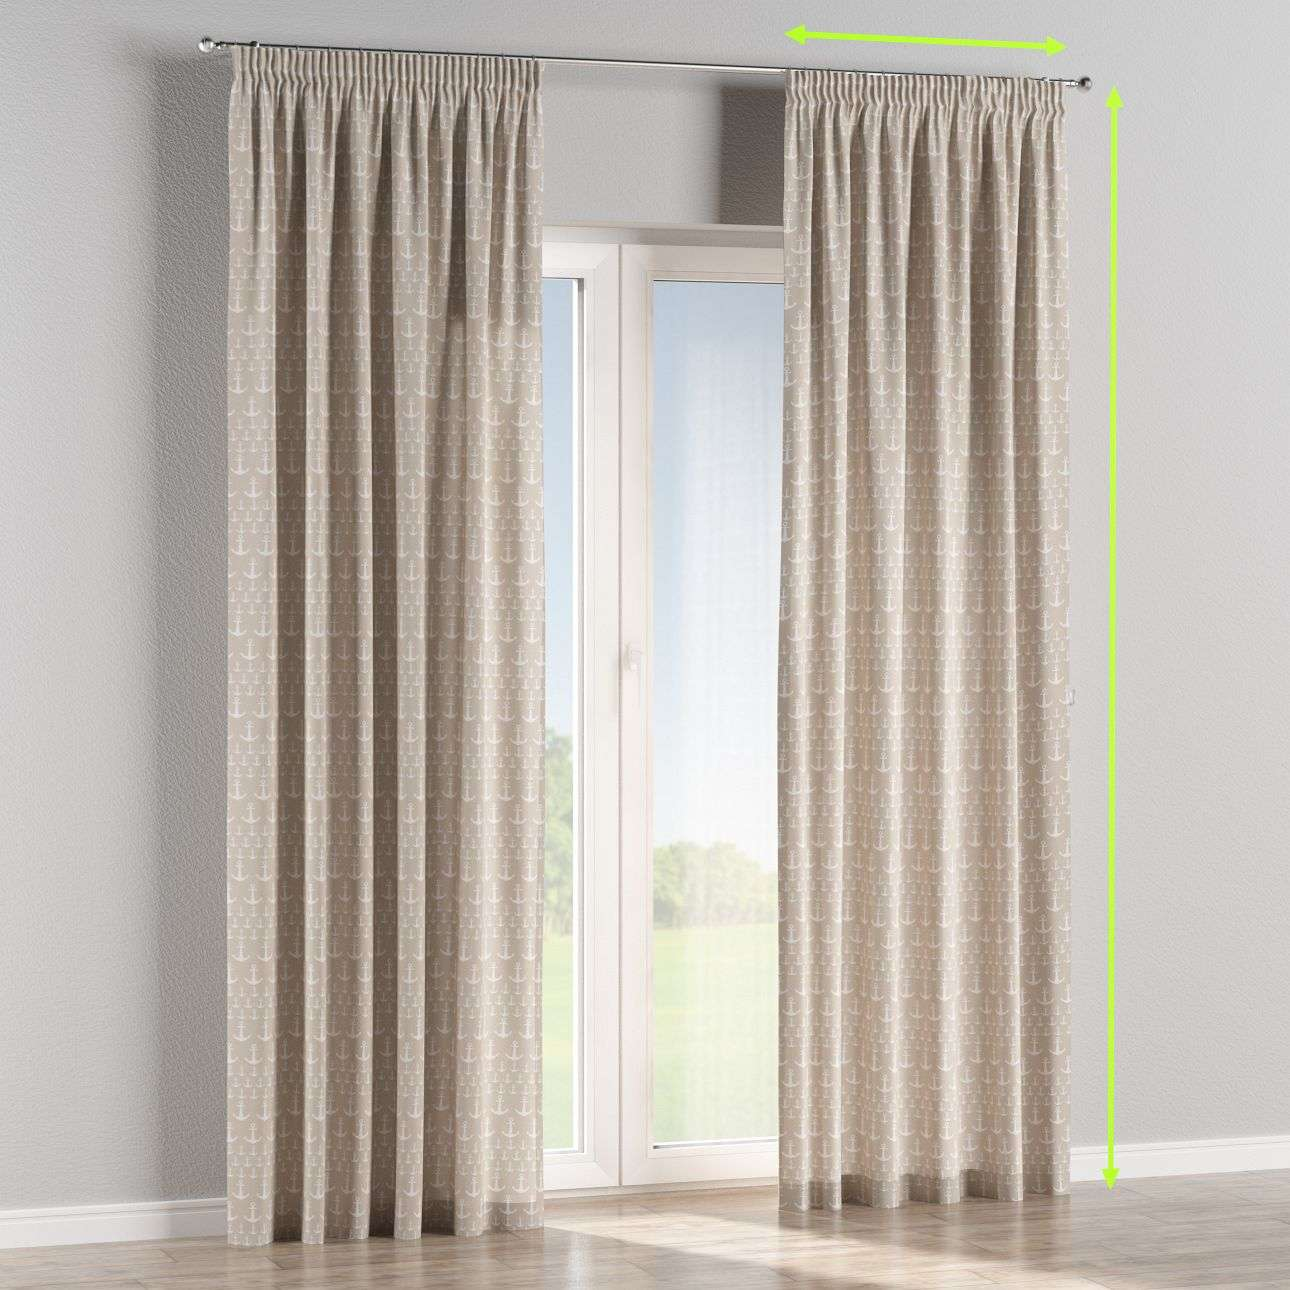 Pencil pleat lined curtains in collection Marina, fabric: 140-63